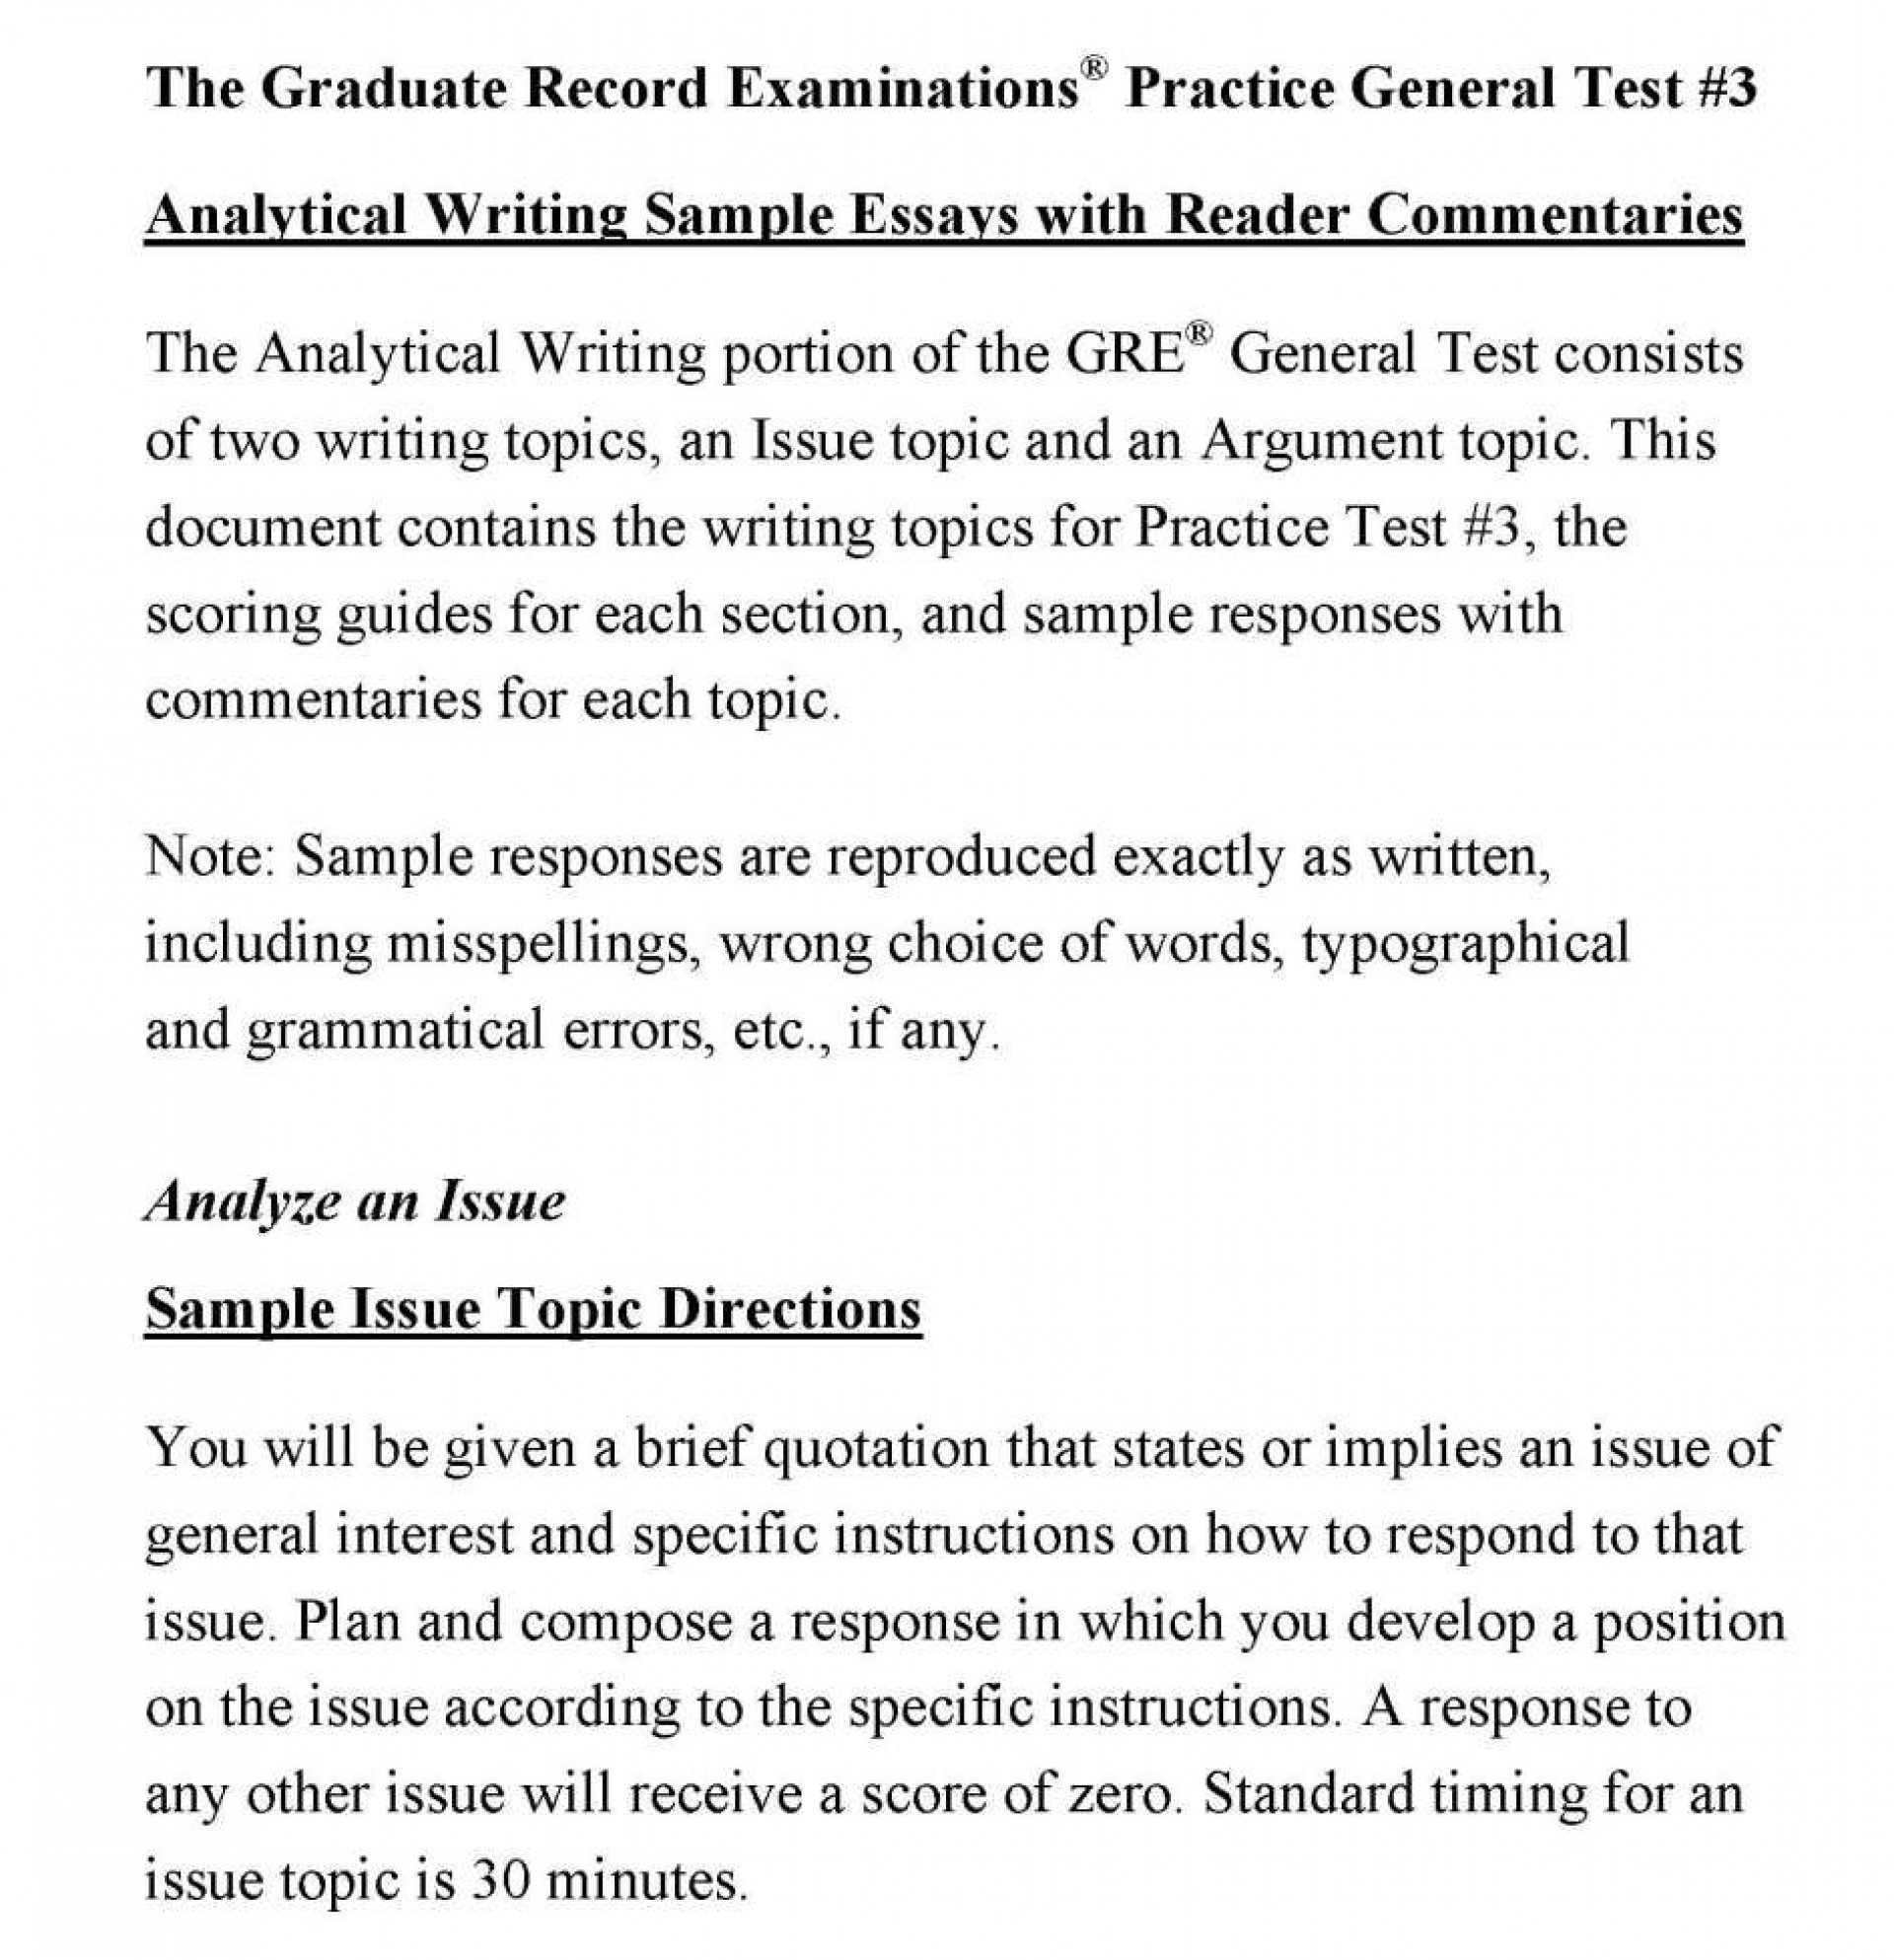 013 Gre Issue Essay Sample Example Argument Samples Pdf Cover Letter Examples Analytical Writ Writing To Use Ets Unusual 6 Prompts 1920